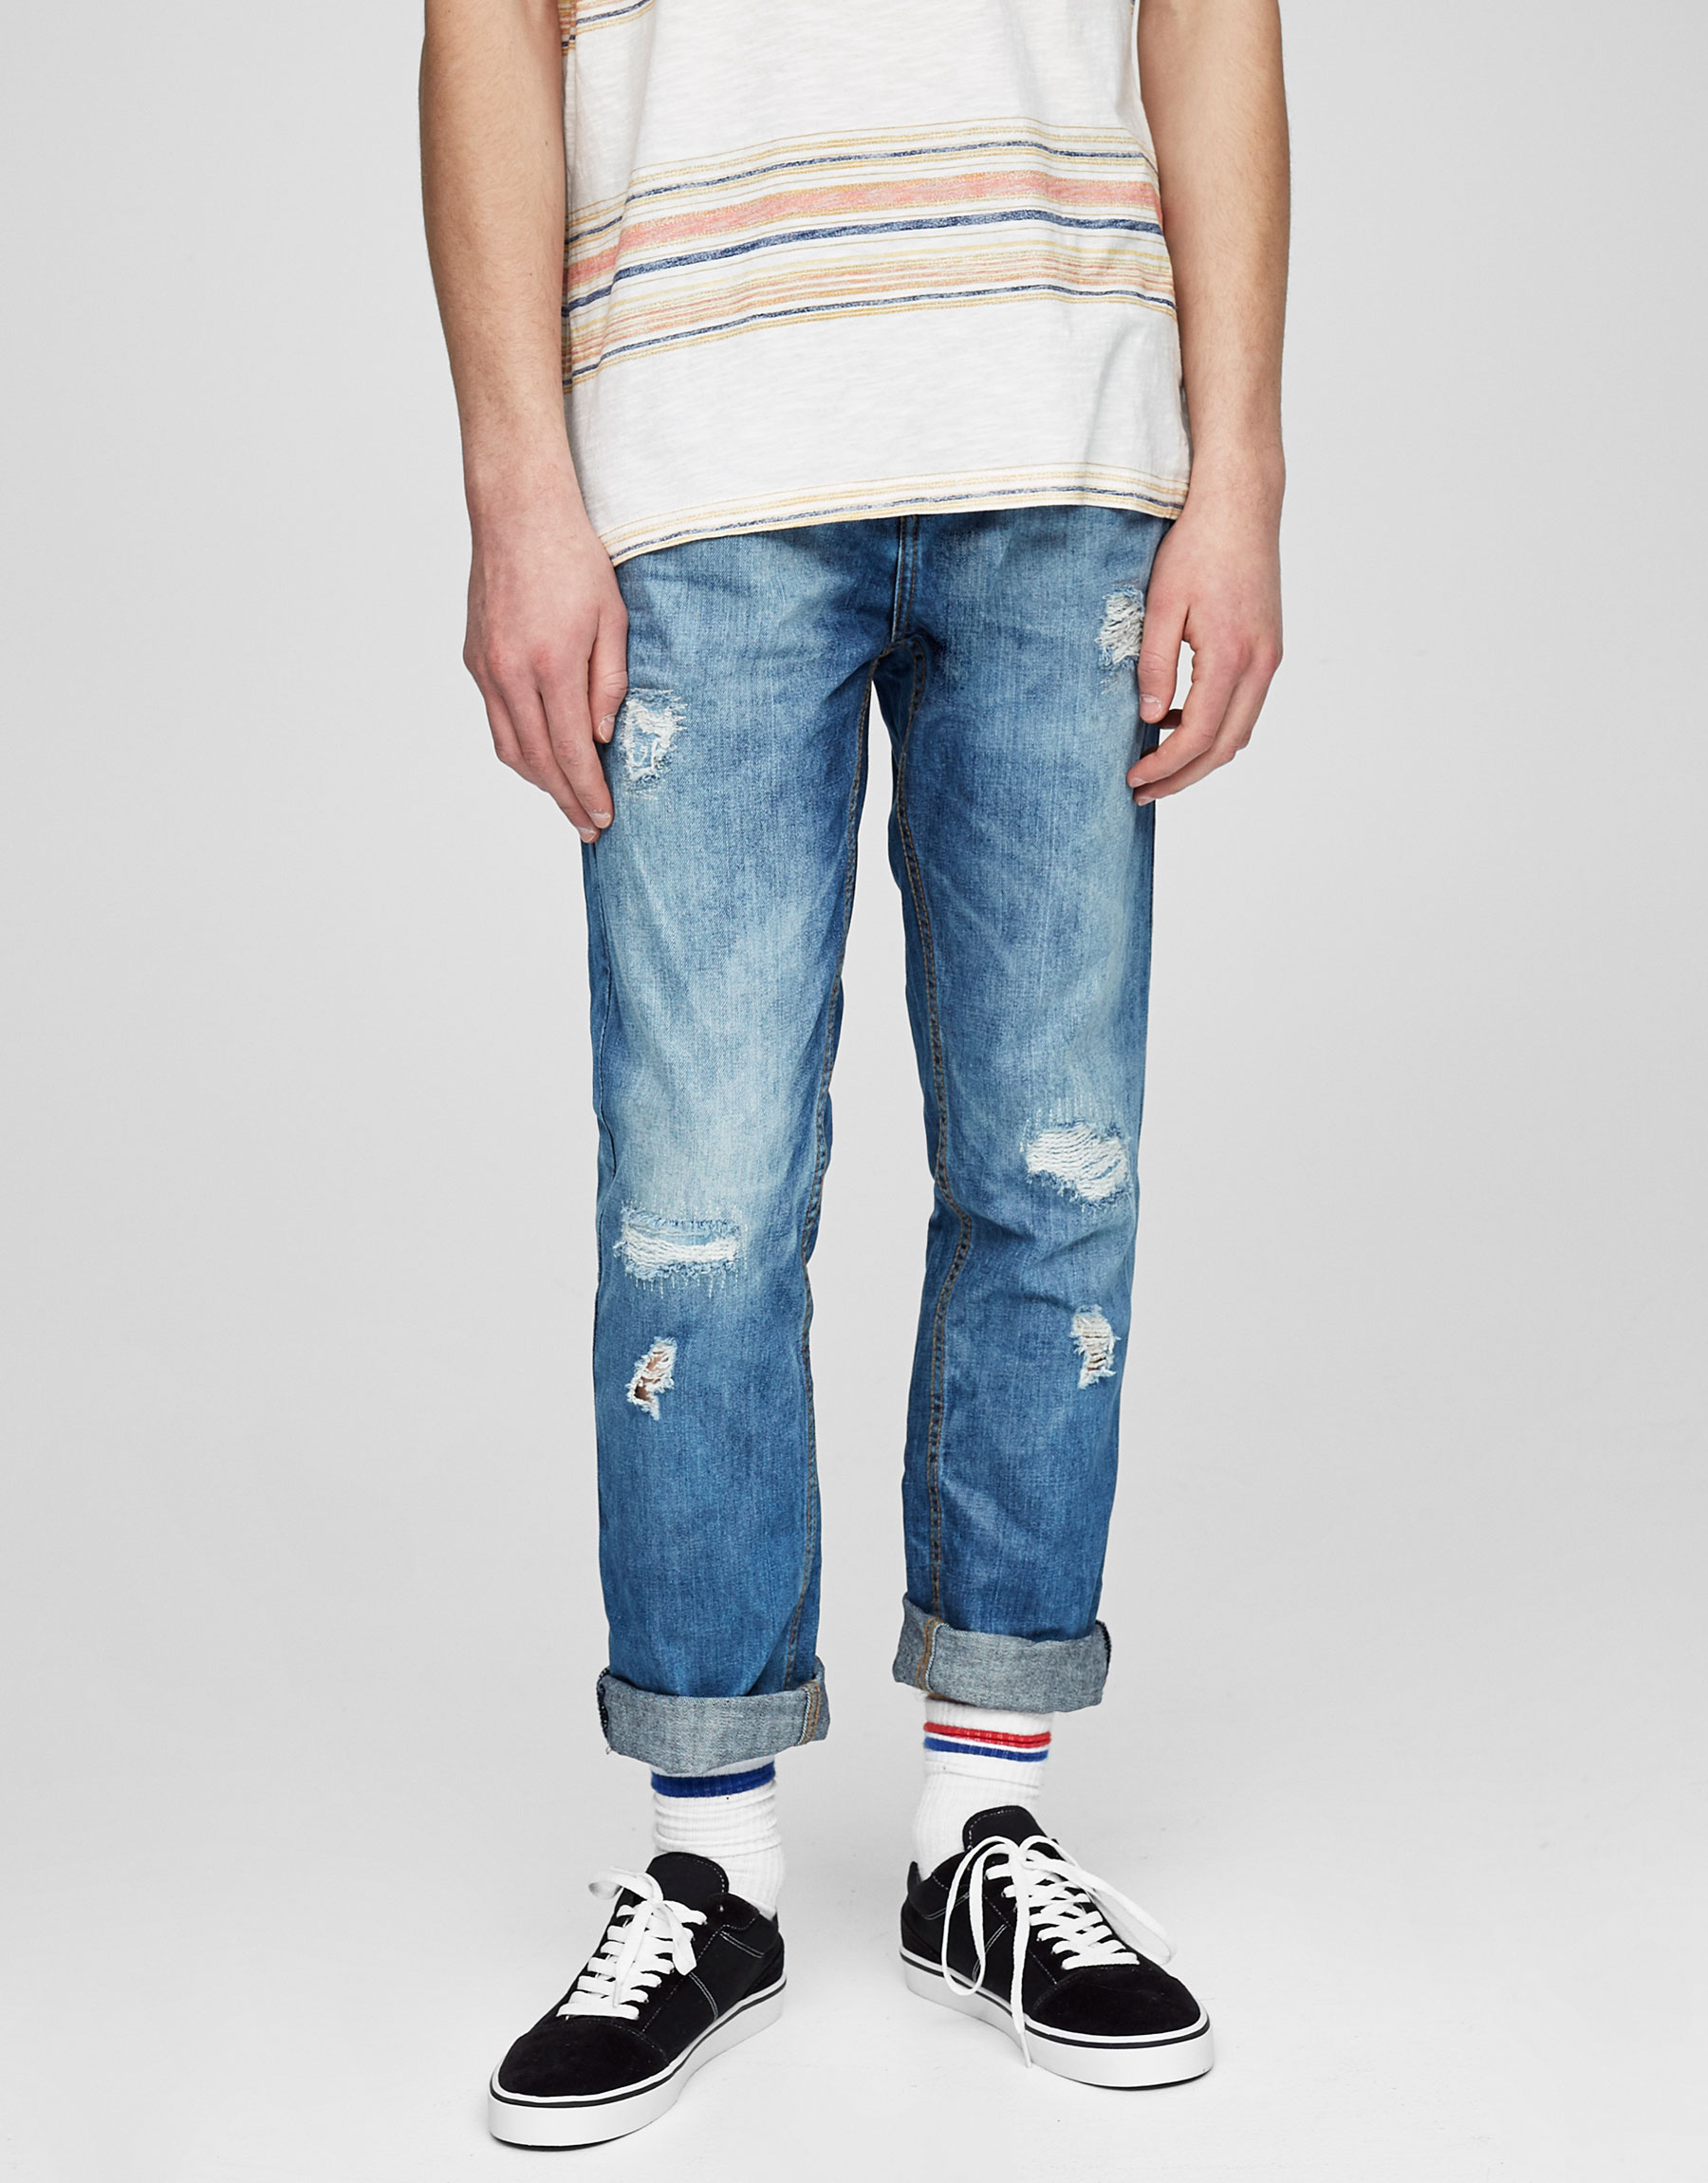 Regular fit blue jeans with rips